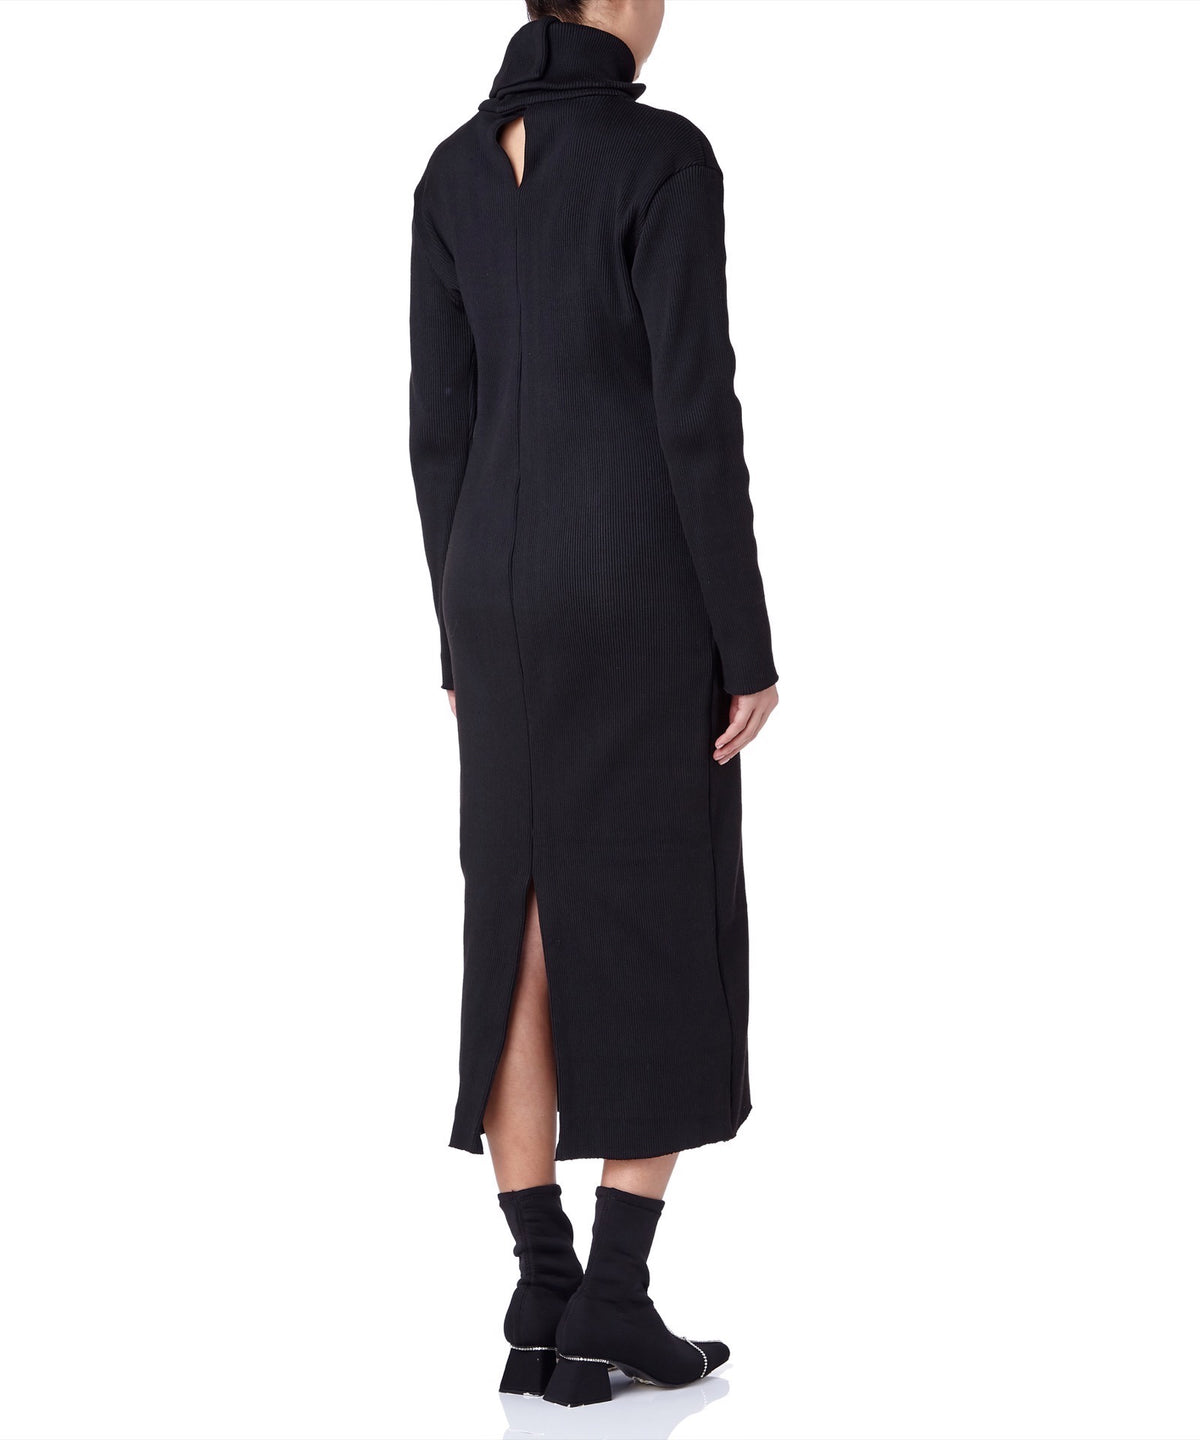 PA5H High Neck Women Black Turtle Neck Dress